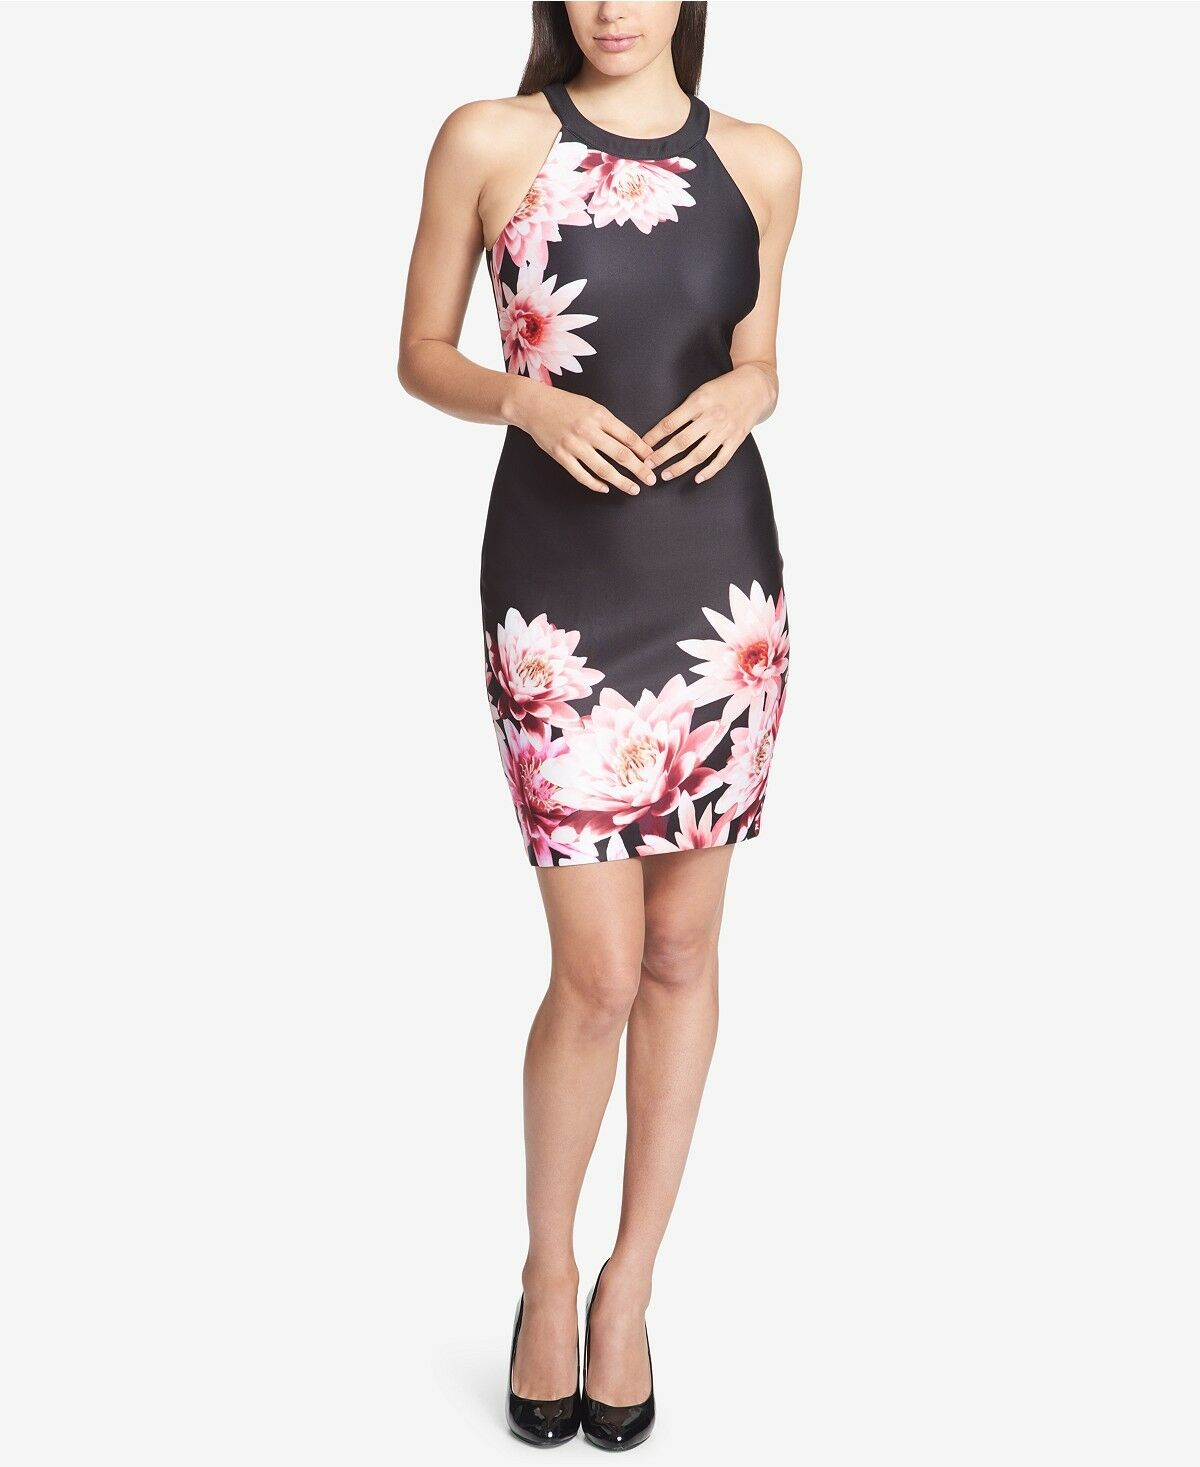 Gorgeous  Guess schwarz and Floral-Print Halter Neck Dress Größe Two (2) New w Tags